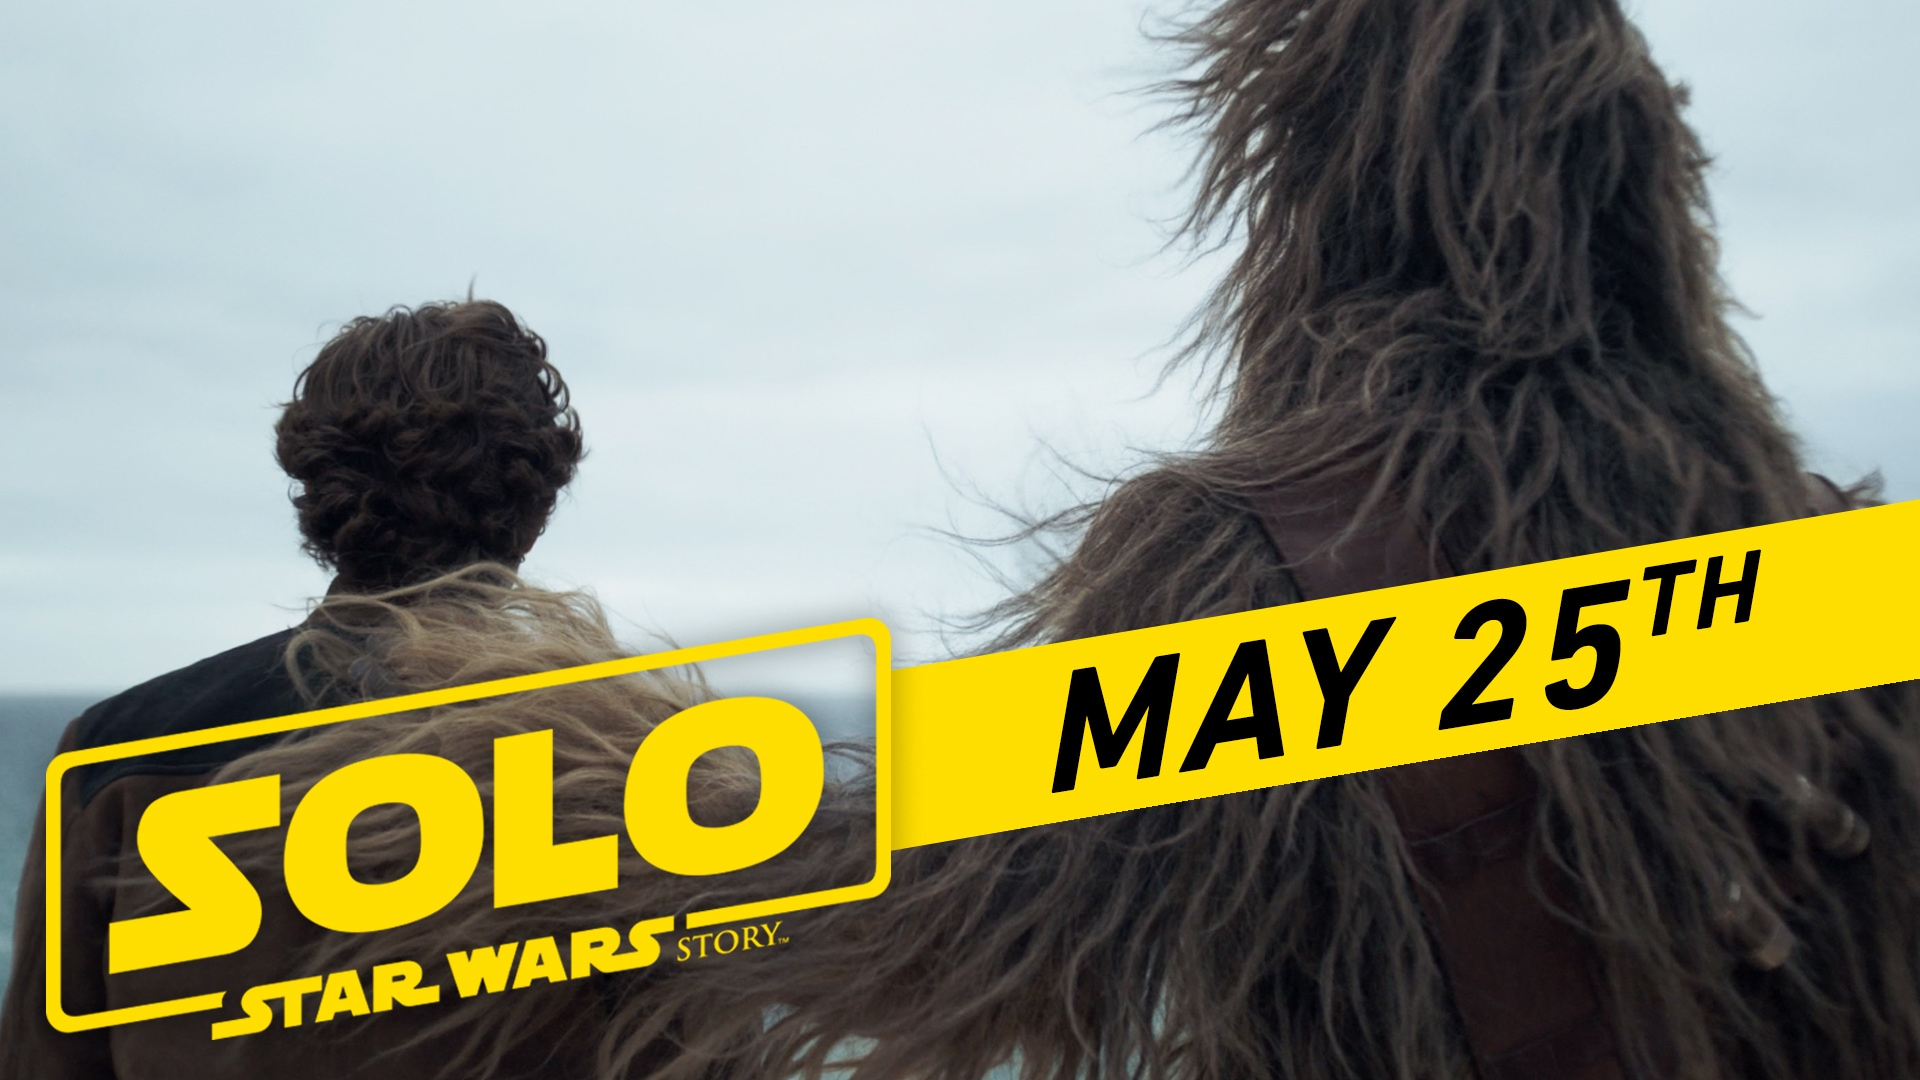 """Big Game"" TV Spot - Solo: A Star Wars Story"